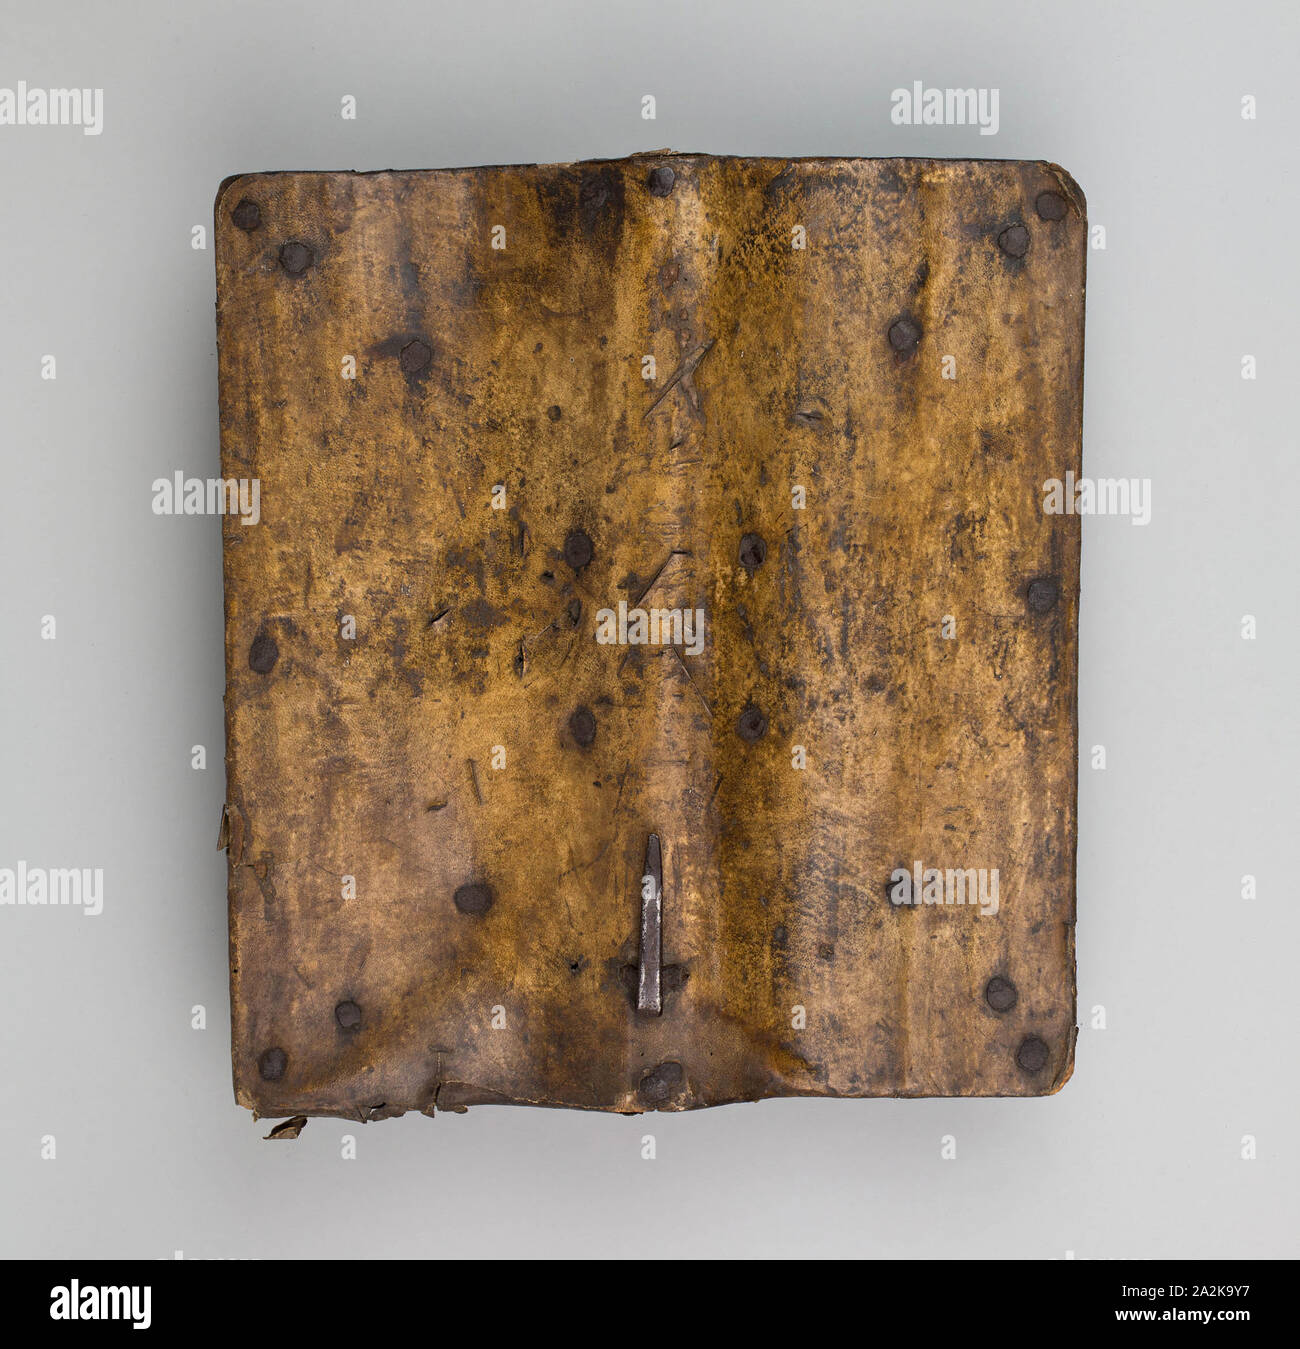 Buckler (Targa), 1550/75, Italian, Italy, Wood, parchment, and iron, 36.8 x 33.9 cm (14 1/2 x 13 1/4 in Stock Photo